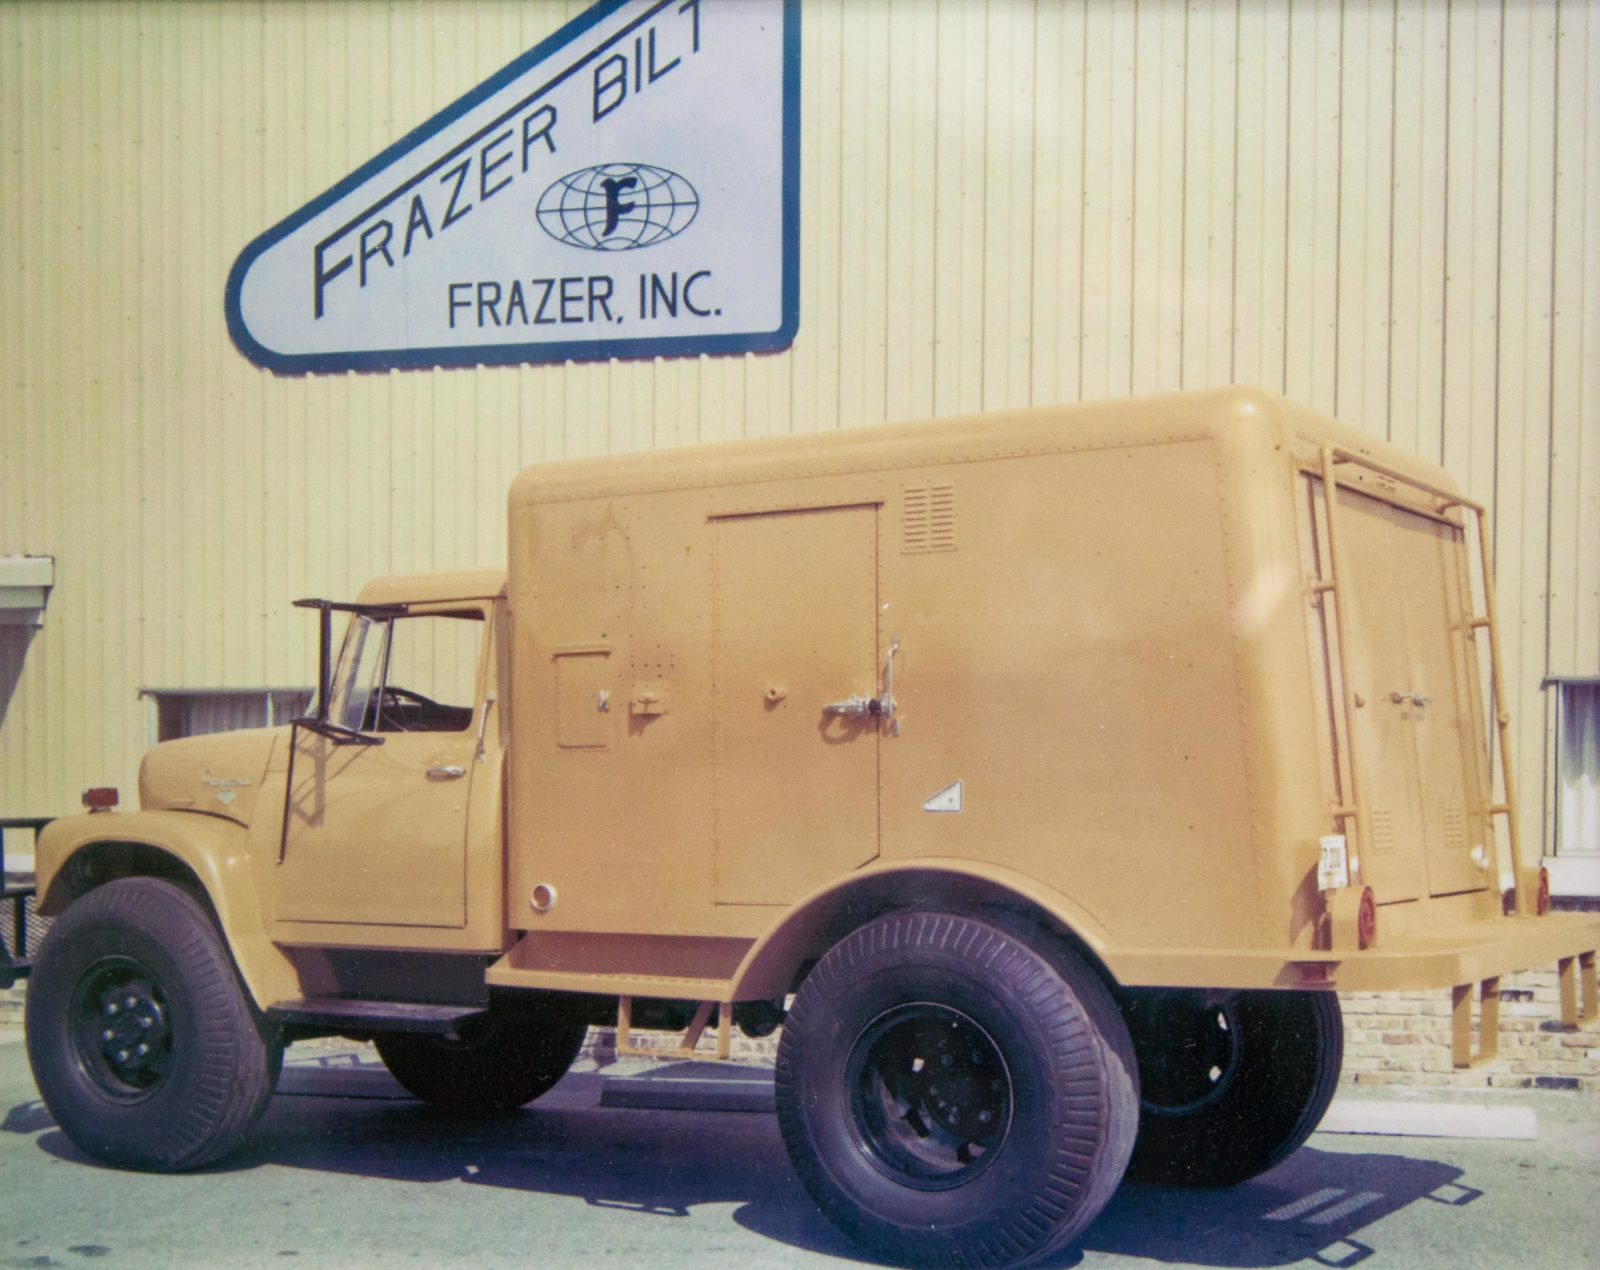 1960 Custom Emergency Vehicle - Frazer